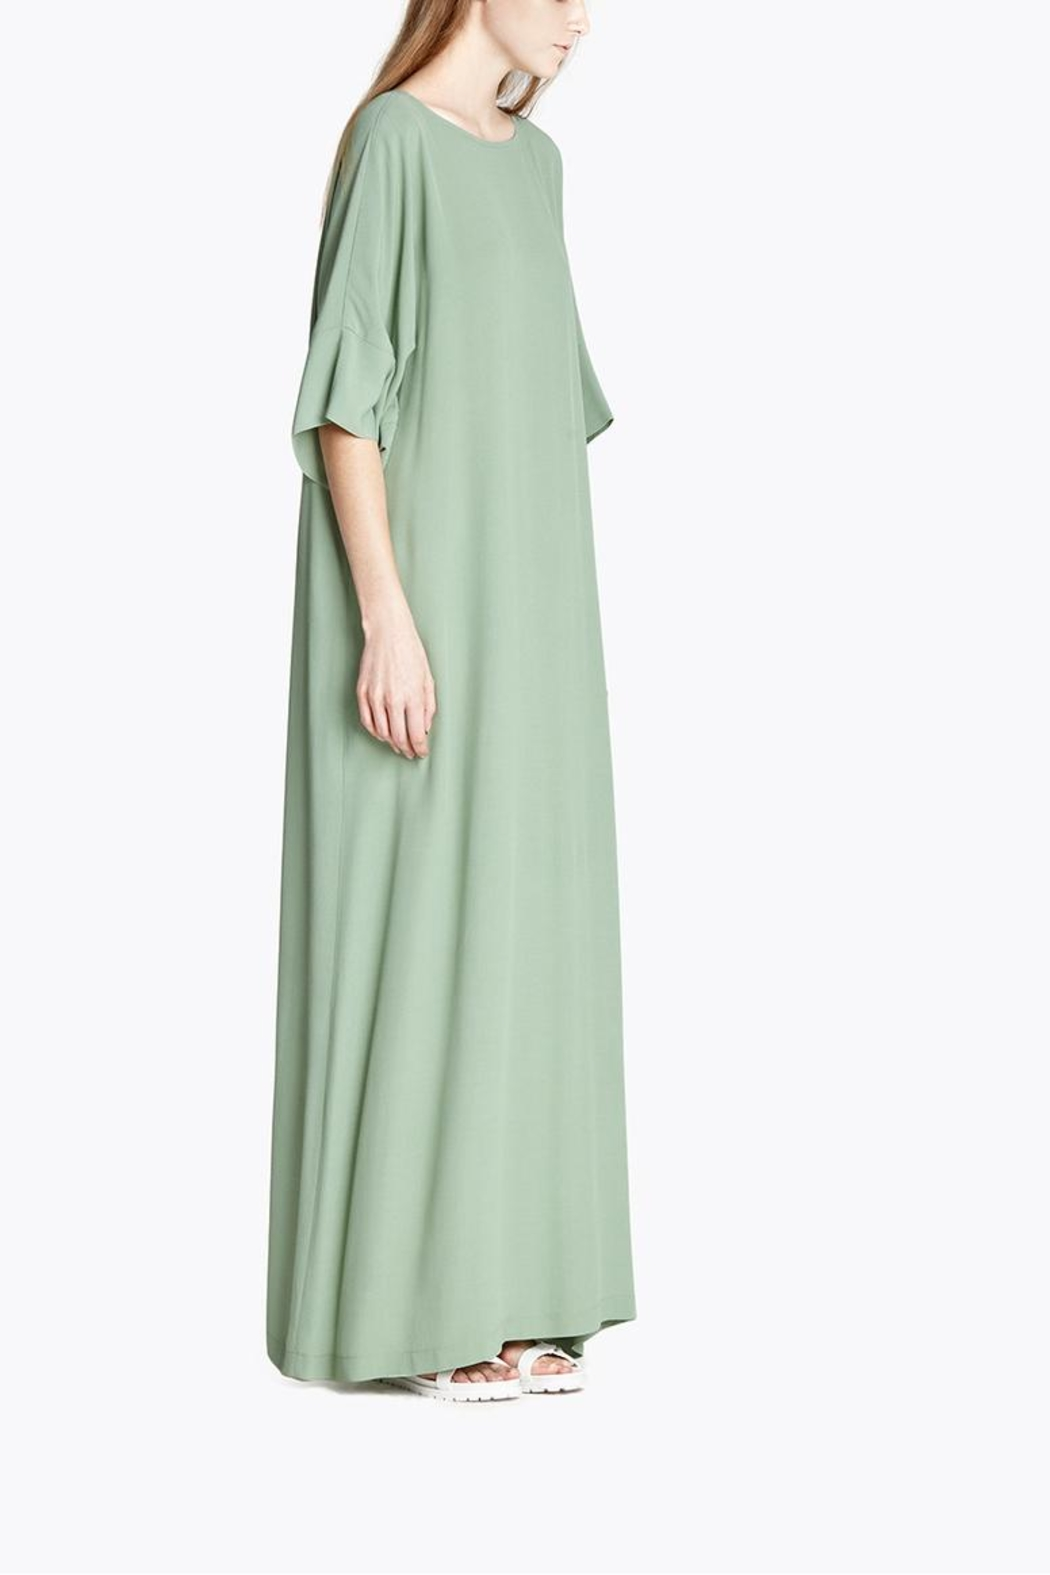 CYRILLE GASSILINE Mint Maxi Dress - Back Cropped Image